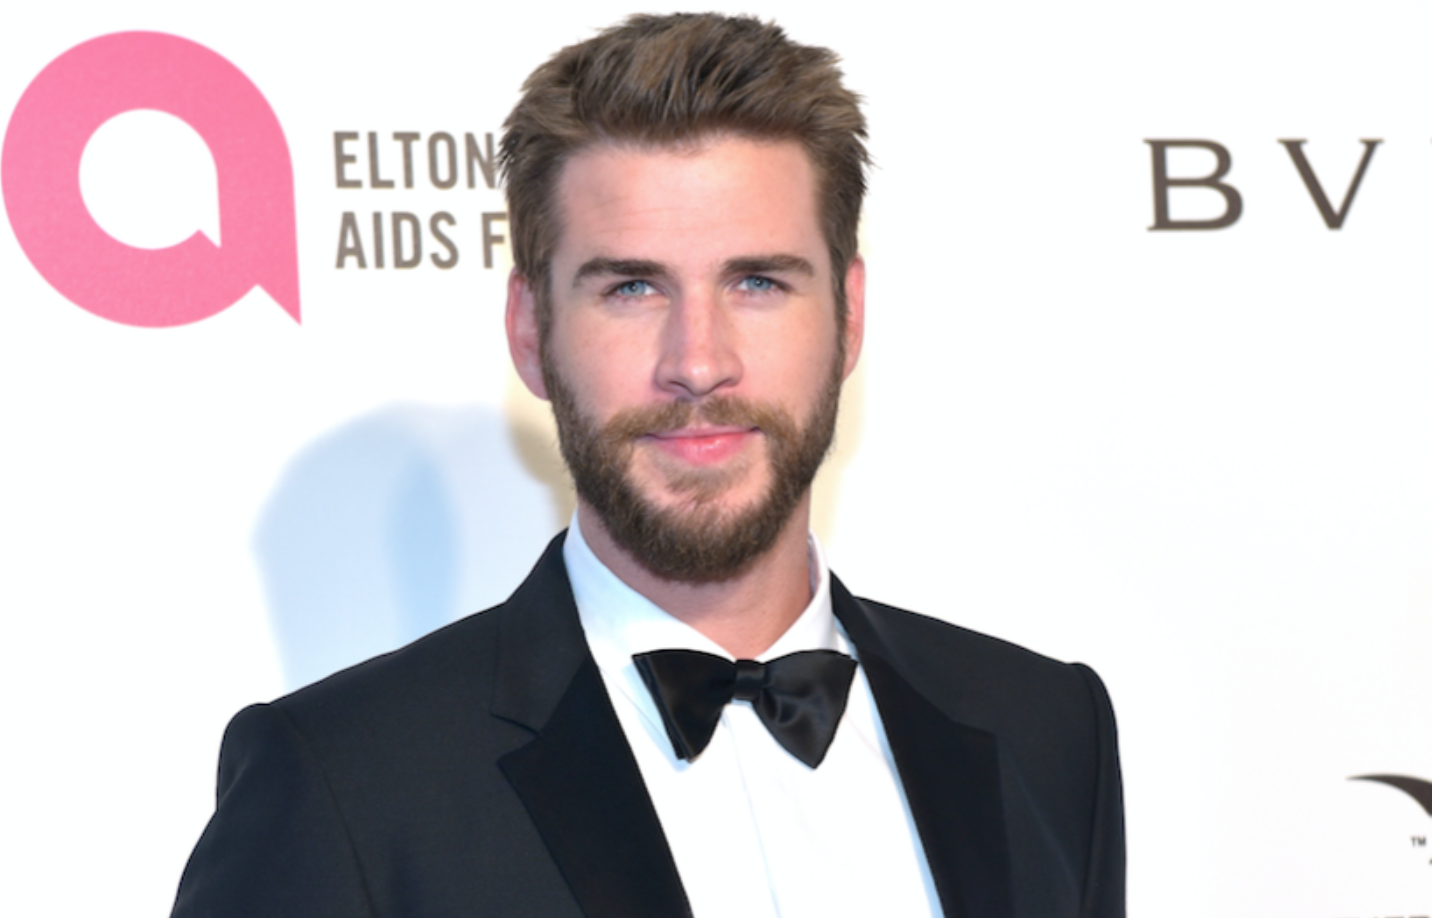 Liam Hemsworth on 'What's Left' of Malibu Home